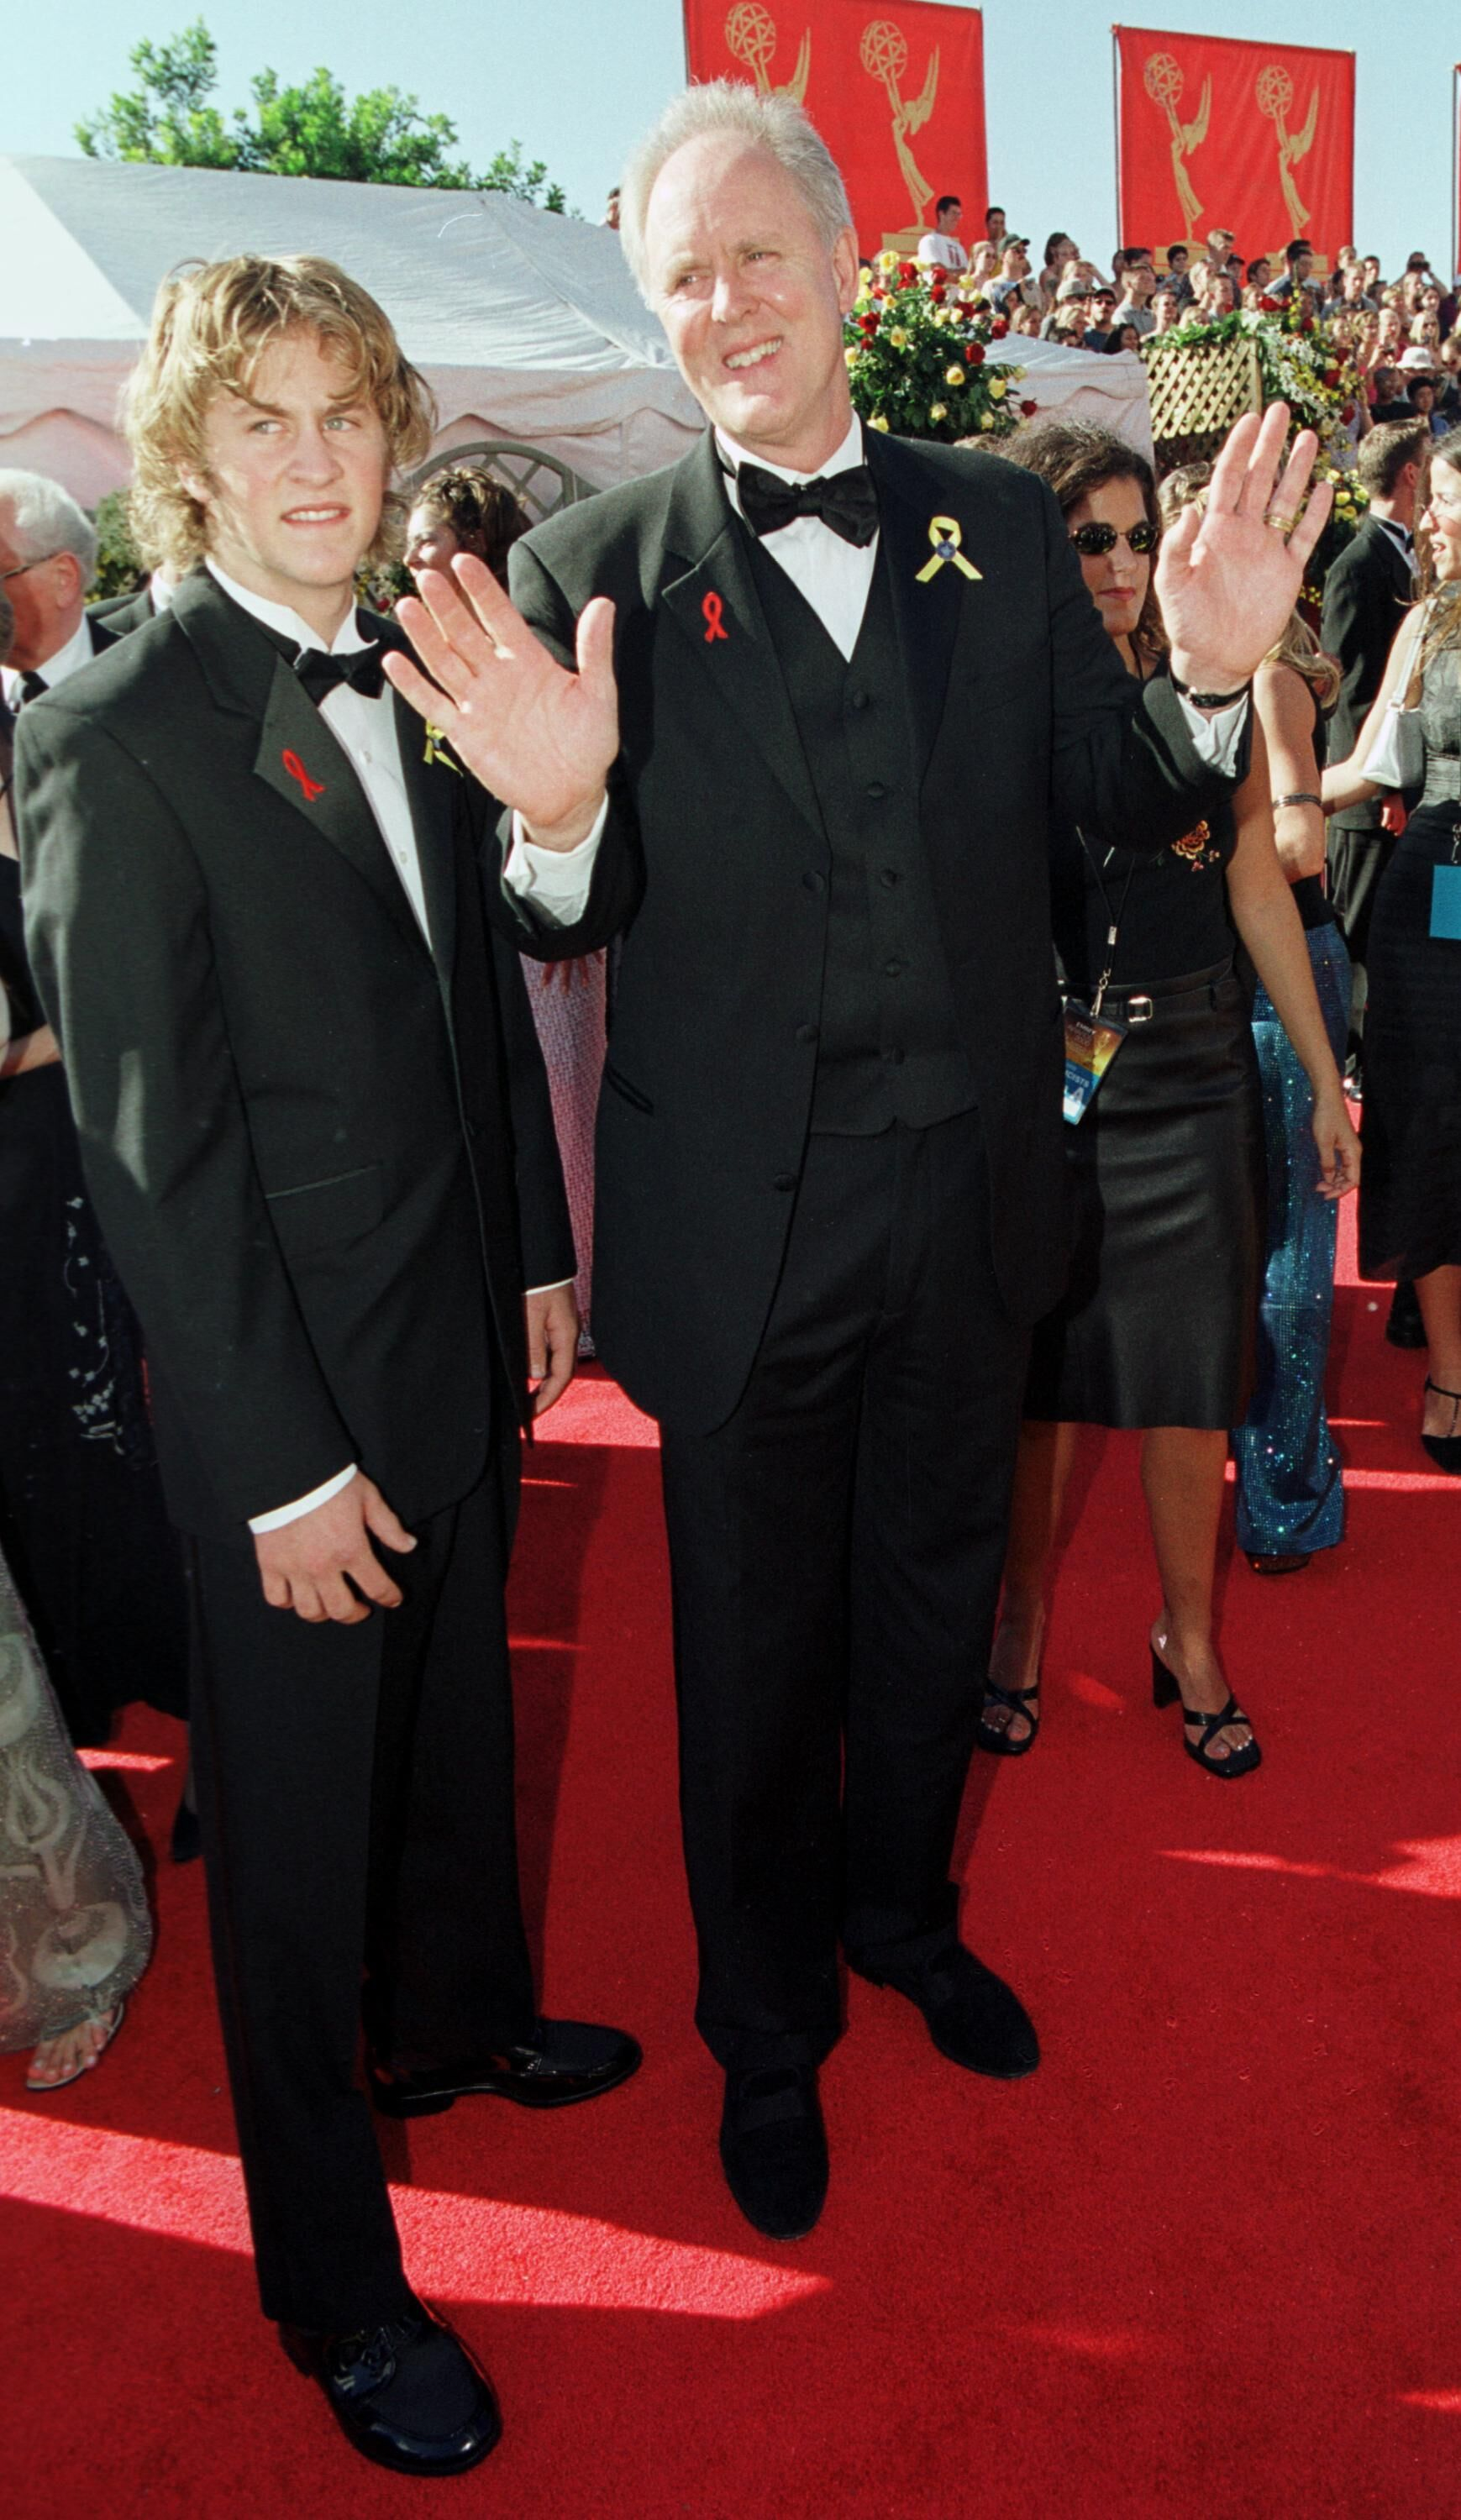 John Lithgow and his son arrive at the 52nd Annual Primetime Emmy Awards. | Source: Getty Images